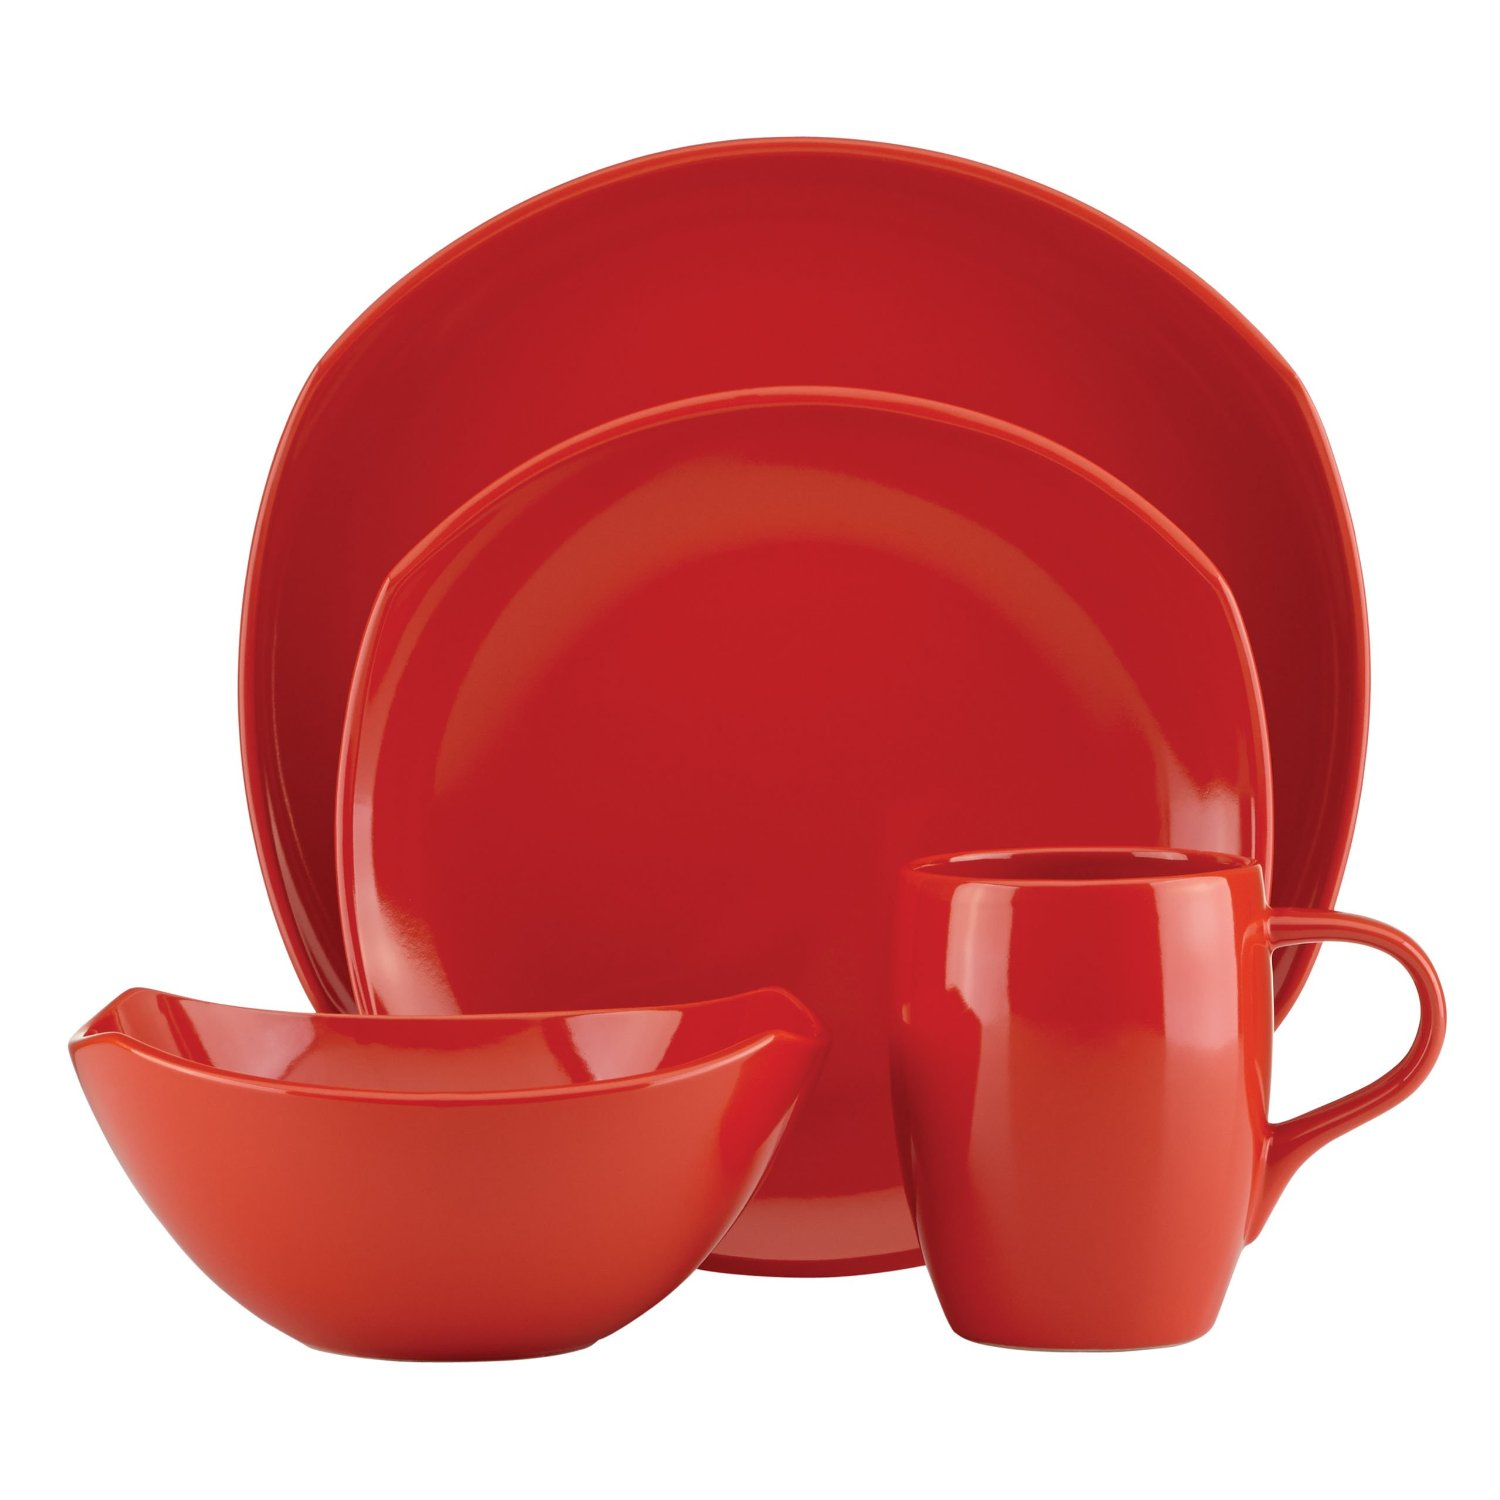 Dansk Unisex Classic Fjord Chili Red 4 Piece Set Red Dinnerware